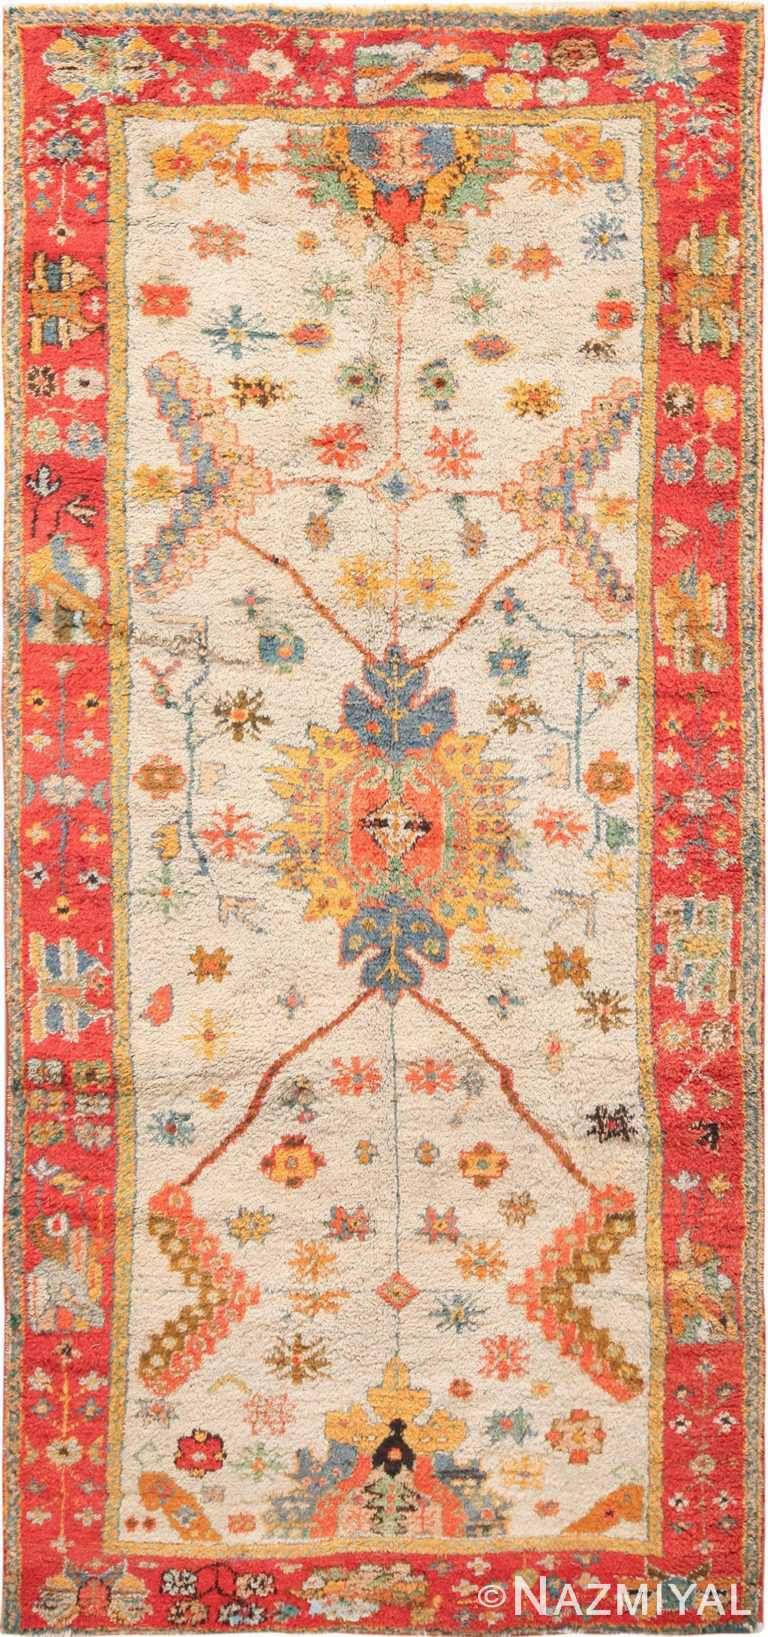 Light Blue Background Antique Turkish Oushak Rug 49834 Nazmiyal